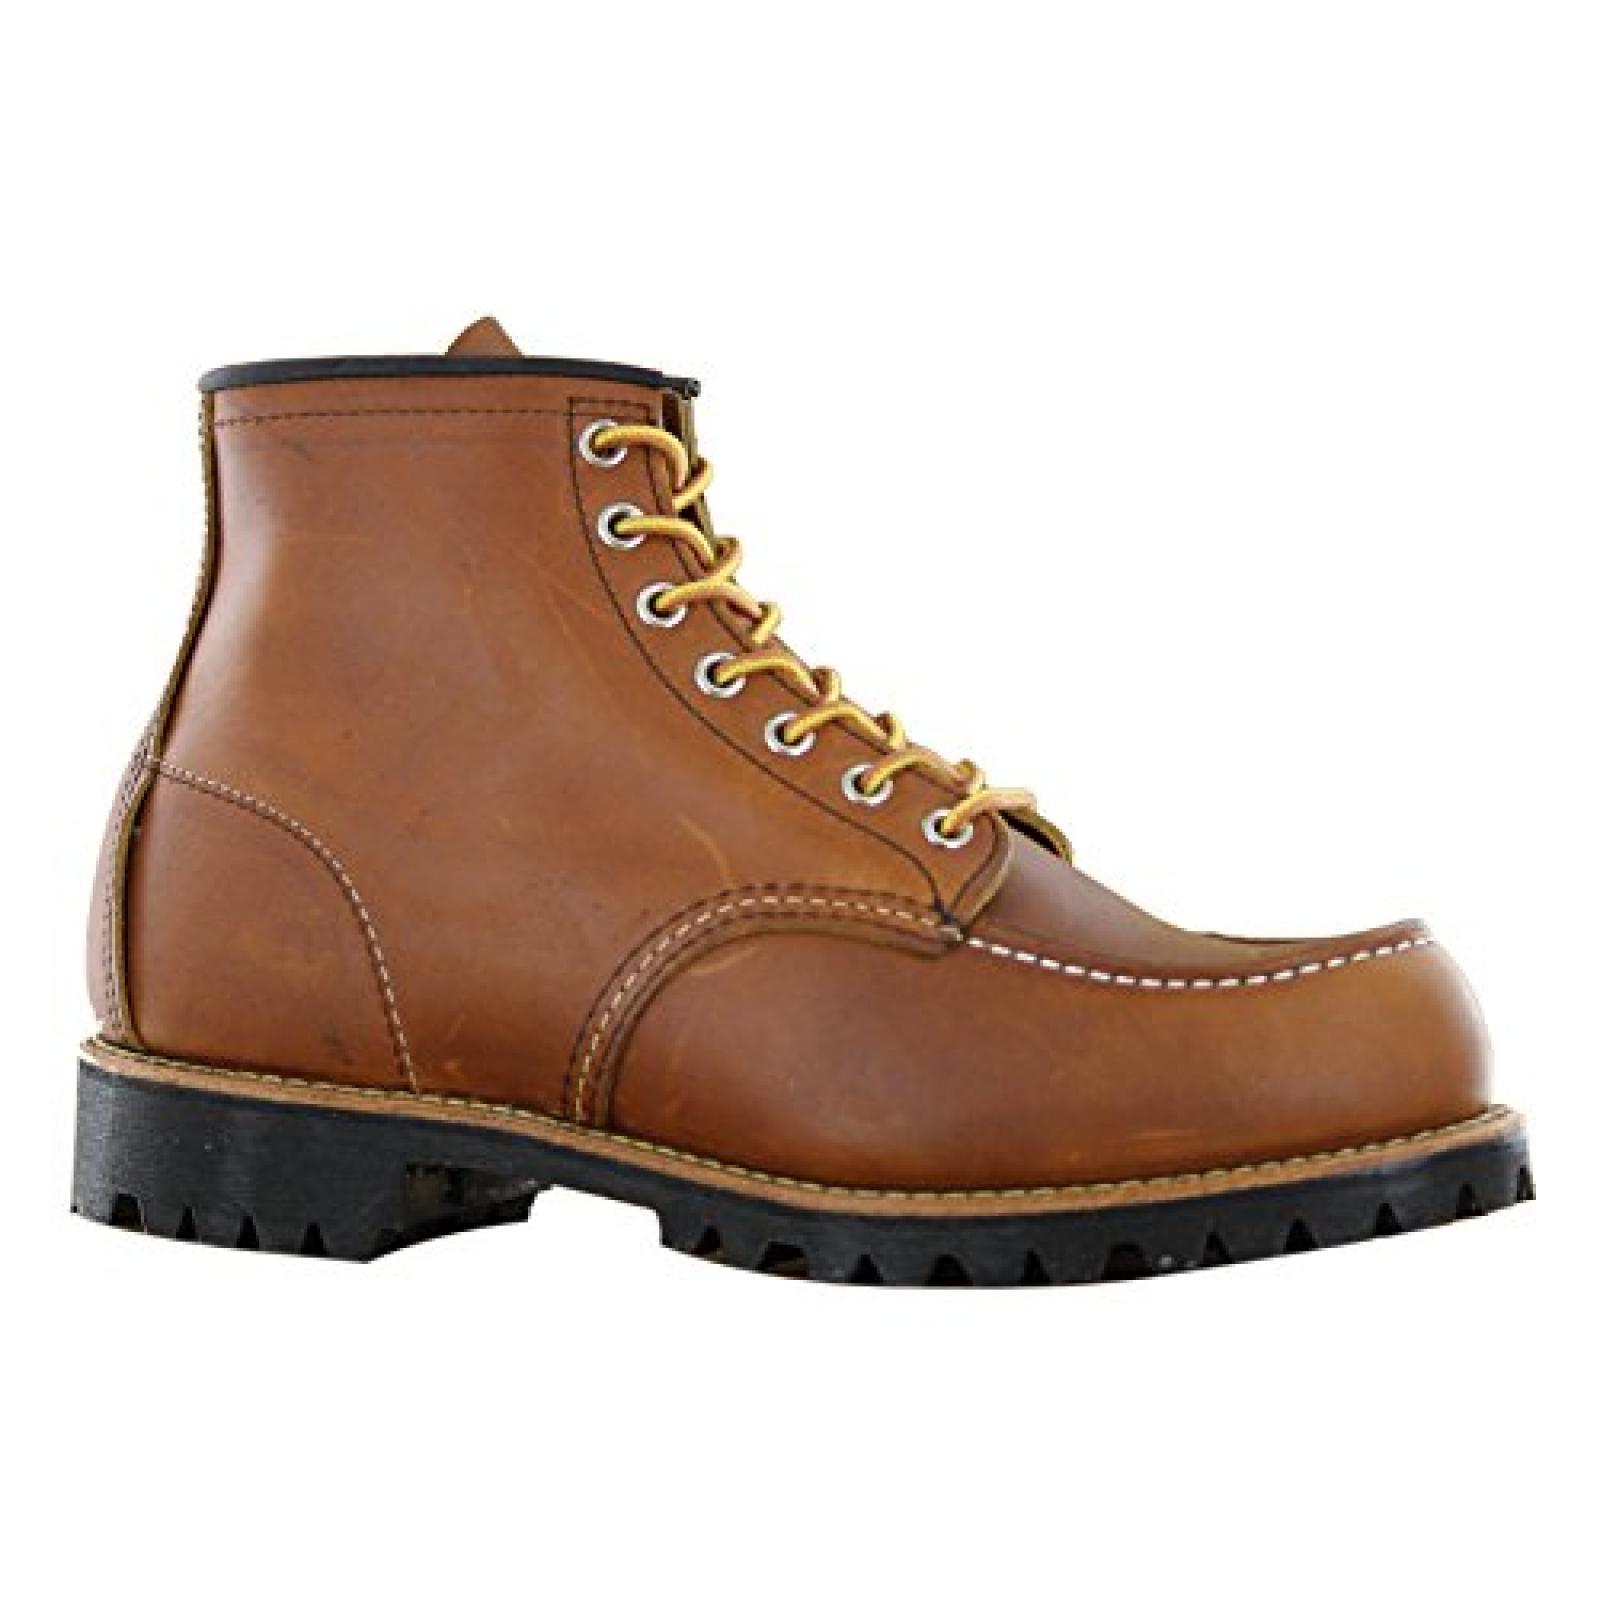 Red Wing Moc Toe Boots - Brown